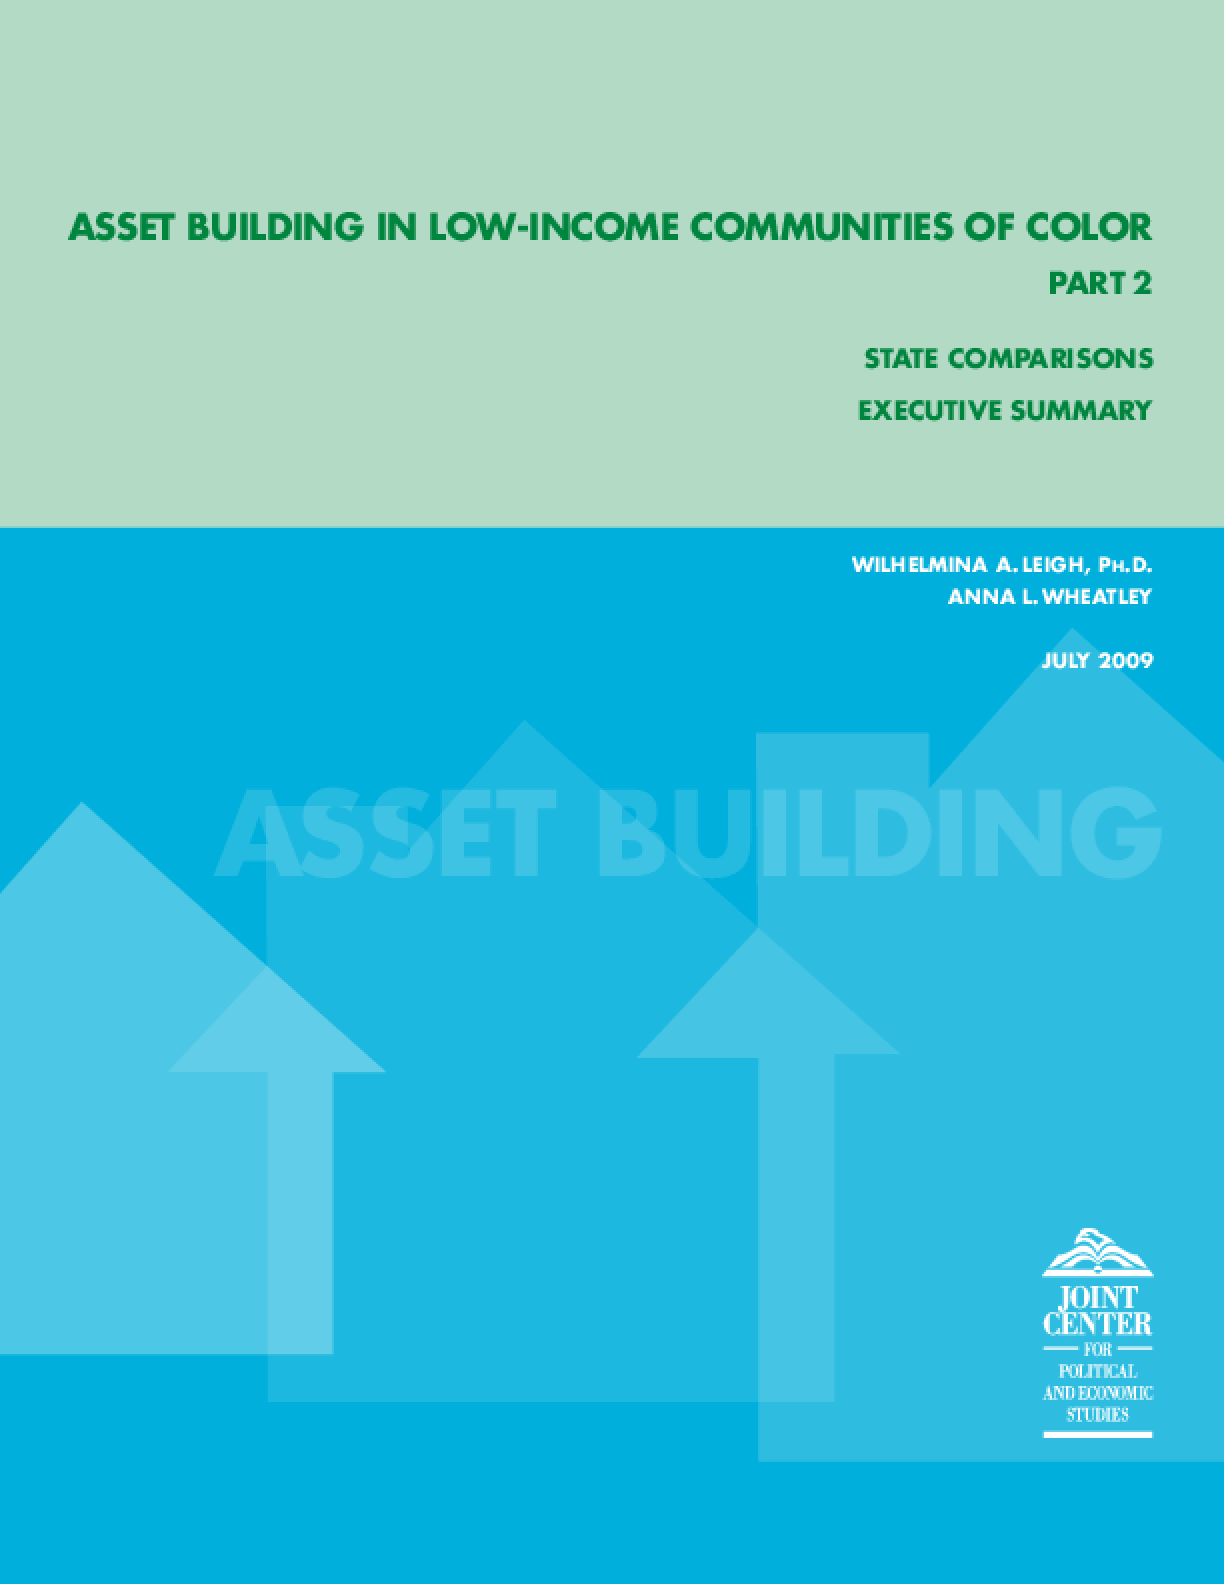 Asset Building in Low-income Communities of Color, Part 2